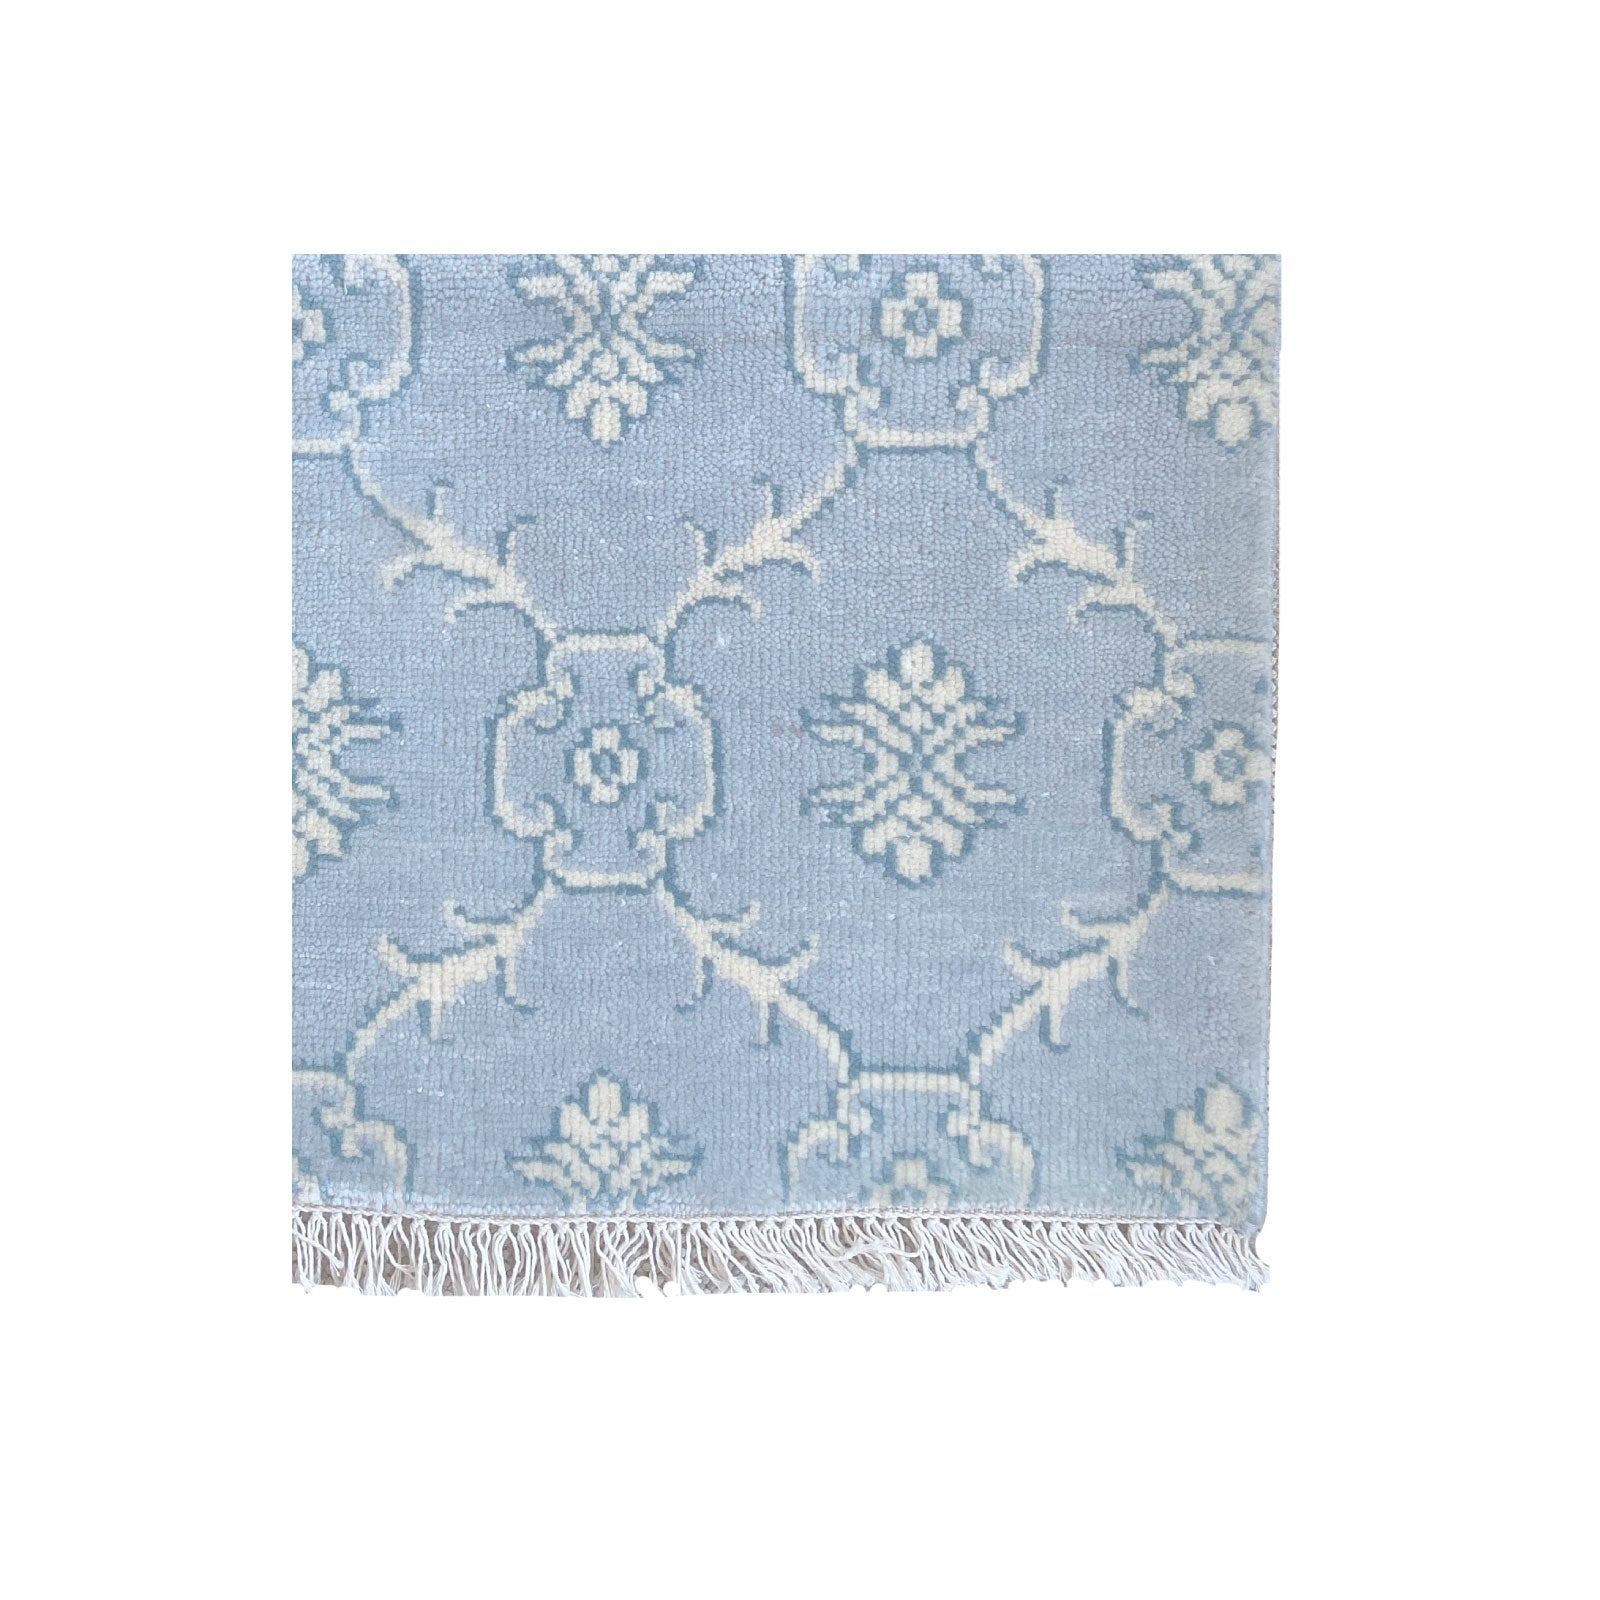 Maribelle Rug in Blue Sample